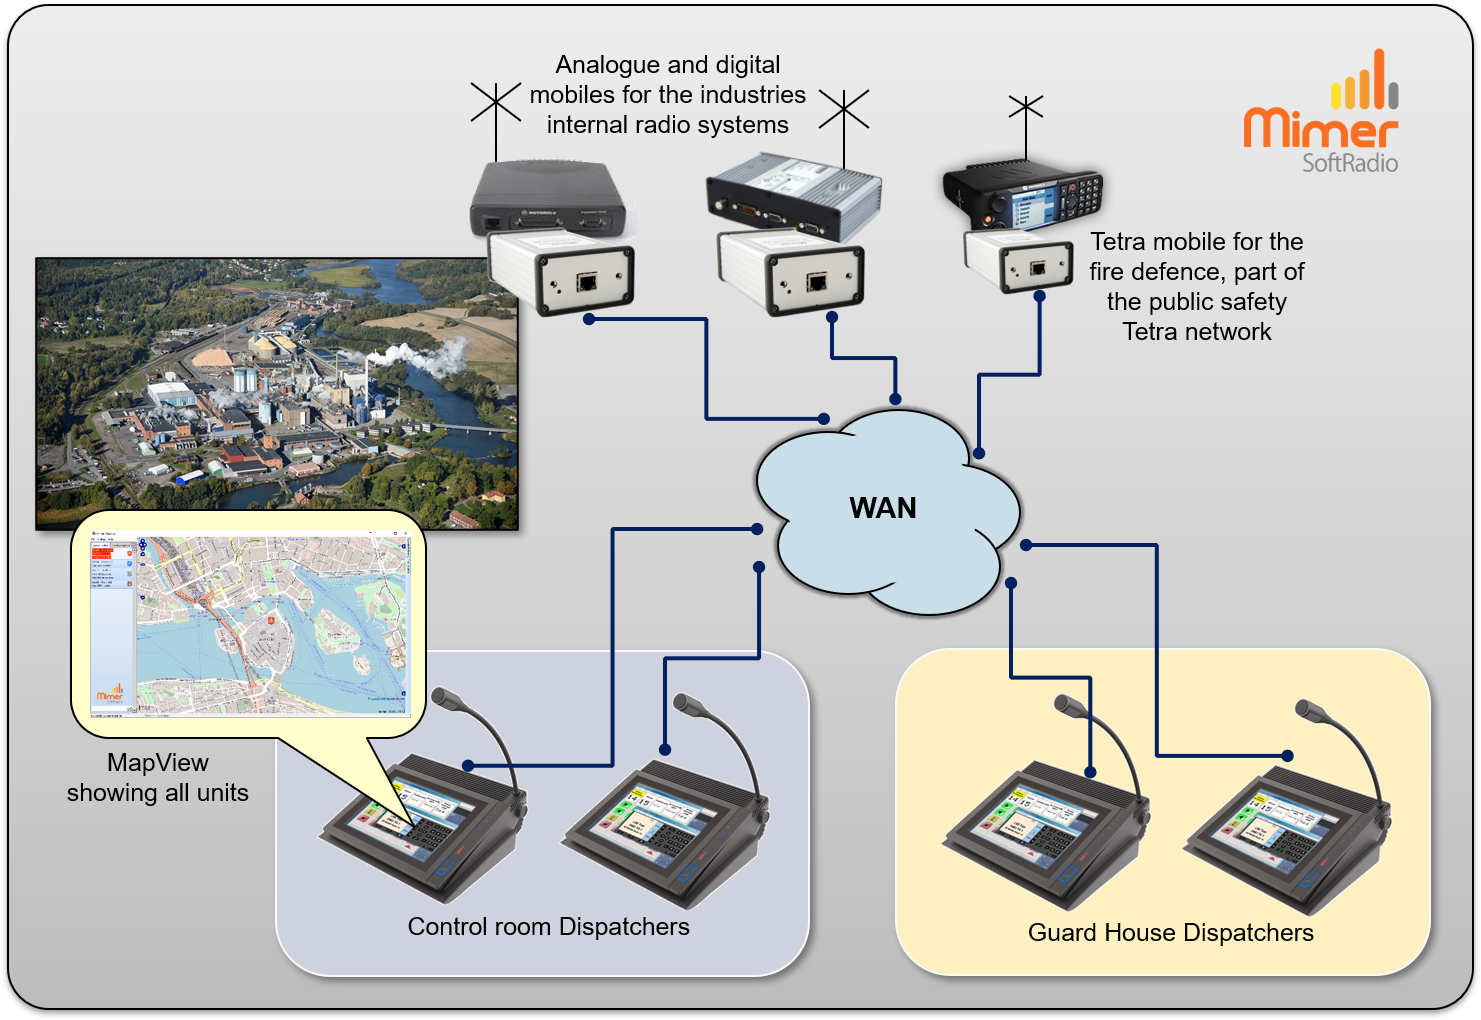 Mixed radio systems at an industry with MapView